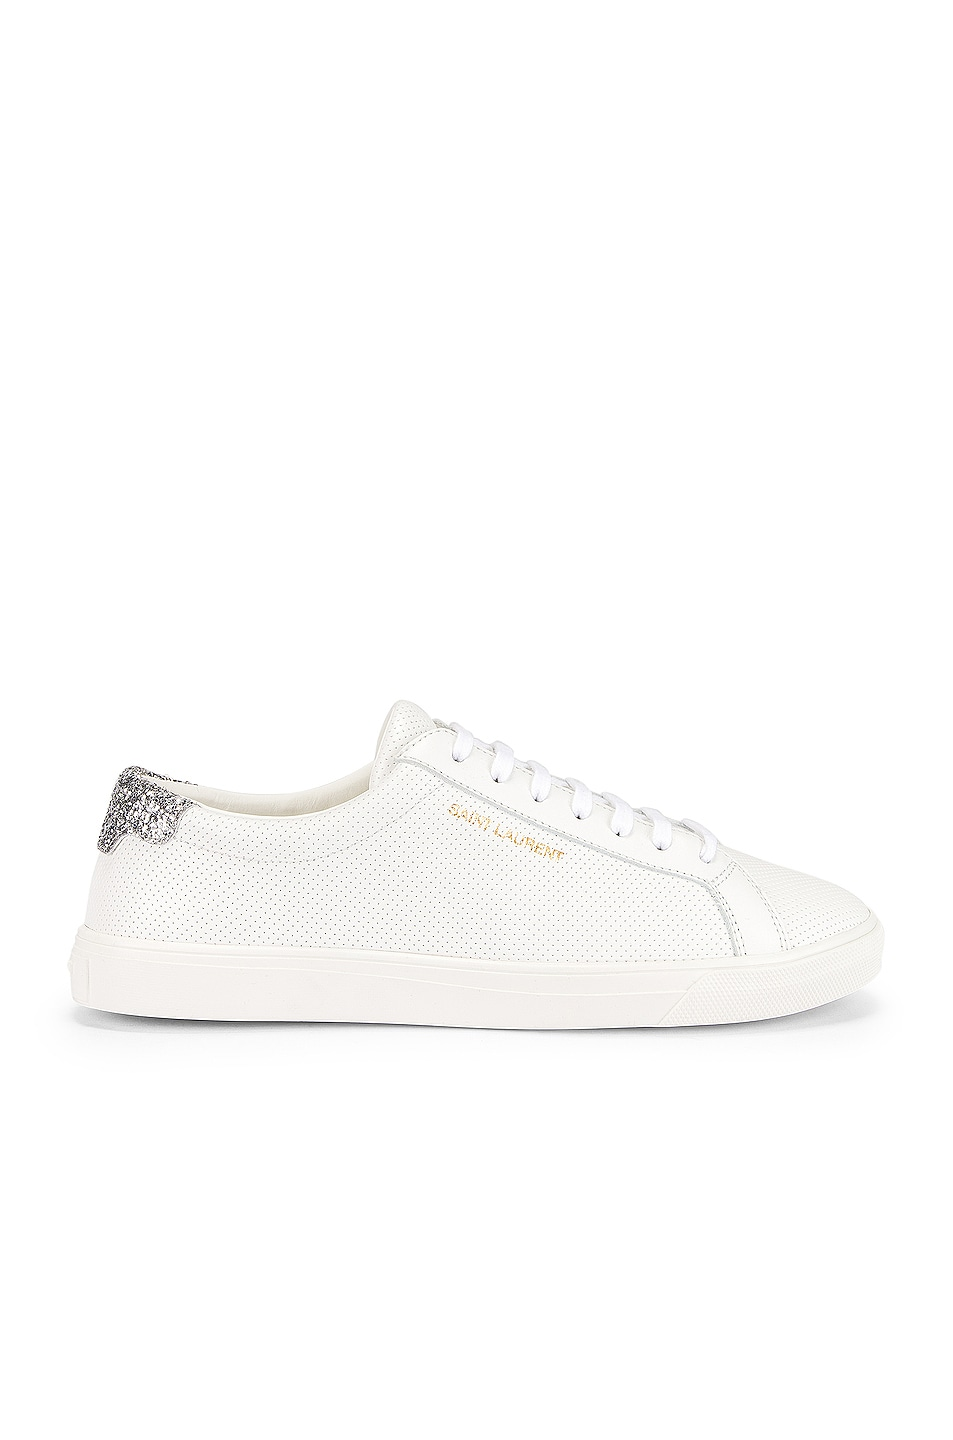 Image 1 of Saint Laurent Andy Low Top Glitter Sneaker in White & Silver